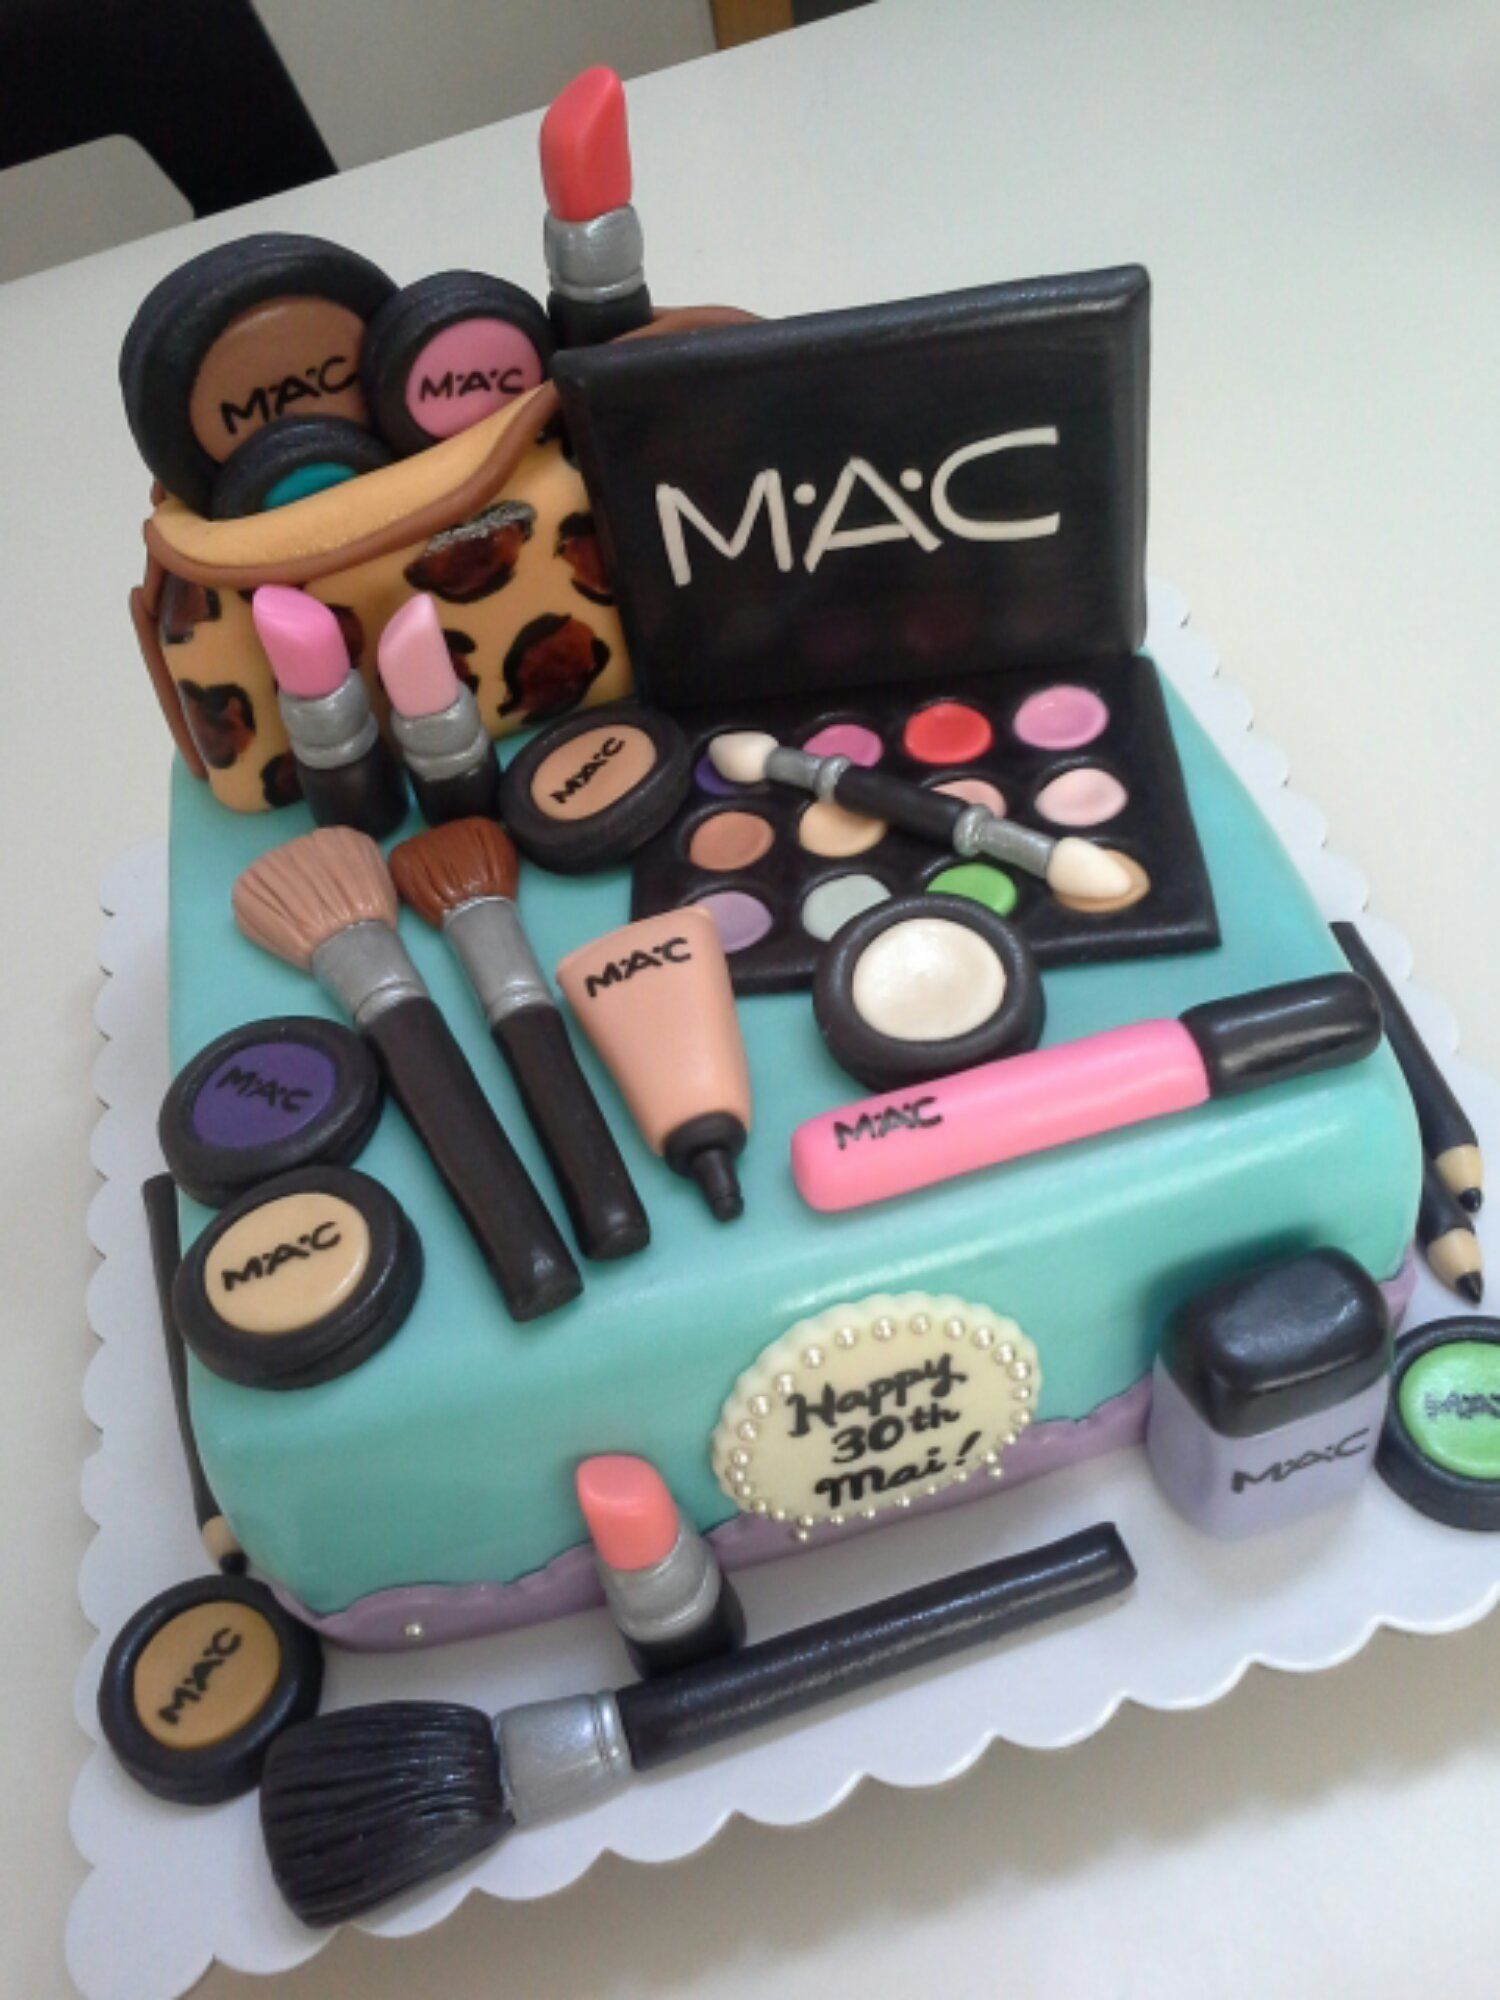 The Make Up On This Cake Looks Fantastic! For All Your